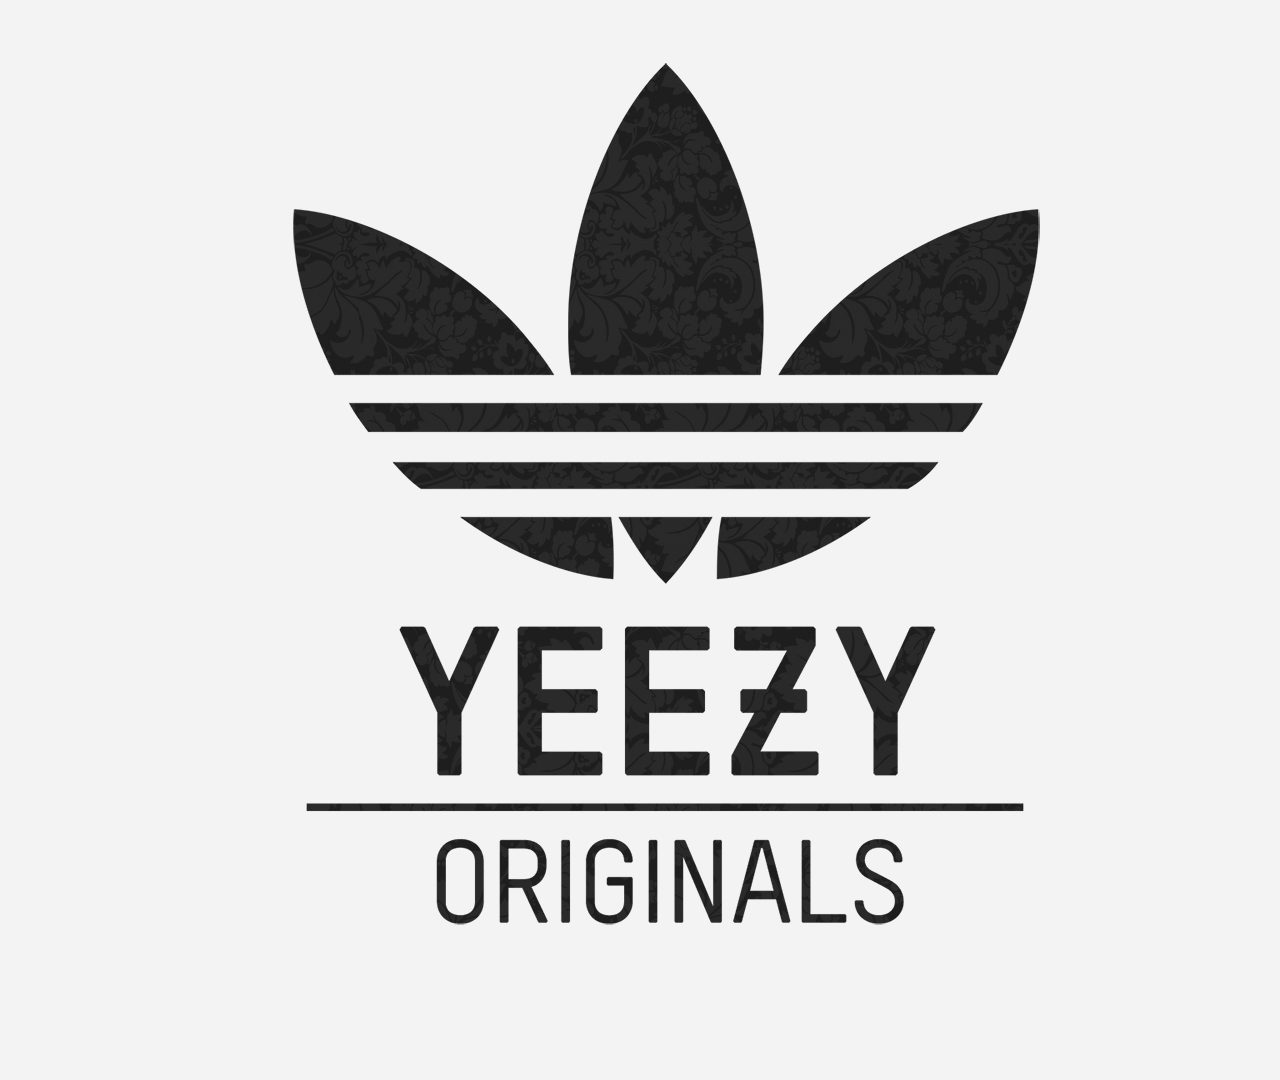 Best Free Wallpaper App For Iphone X Adidas Yeezy Logo Hd Wallpapers Hd Wallpapers